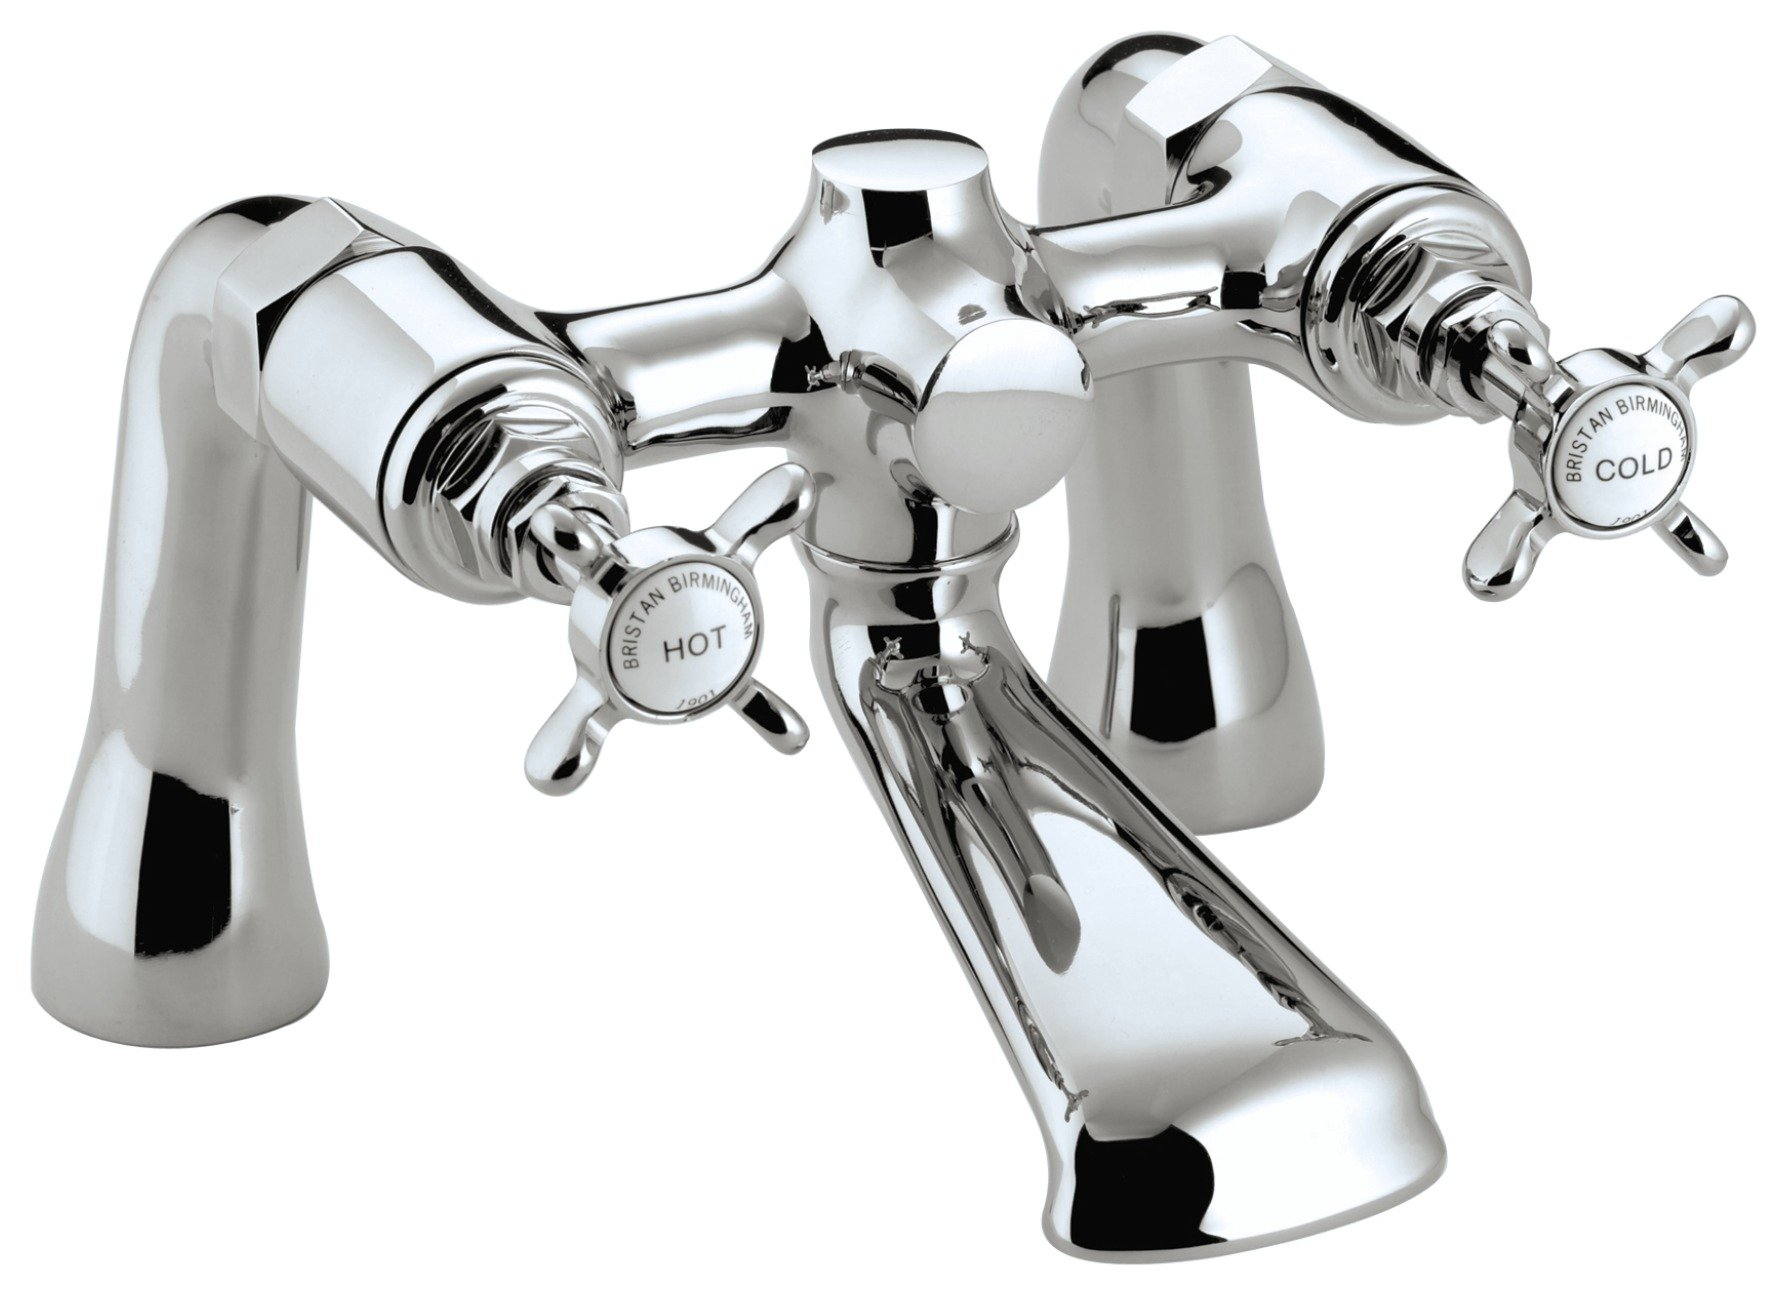 Image of Bristan 1901 Bath Filler Tap - Chrome.